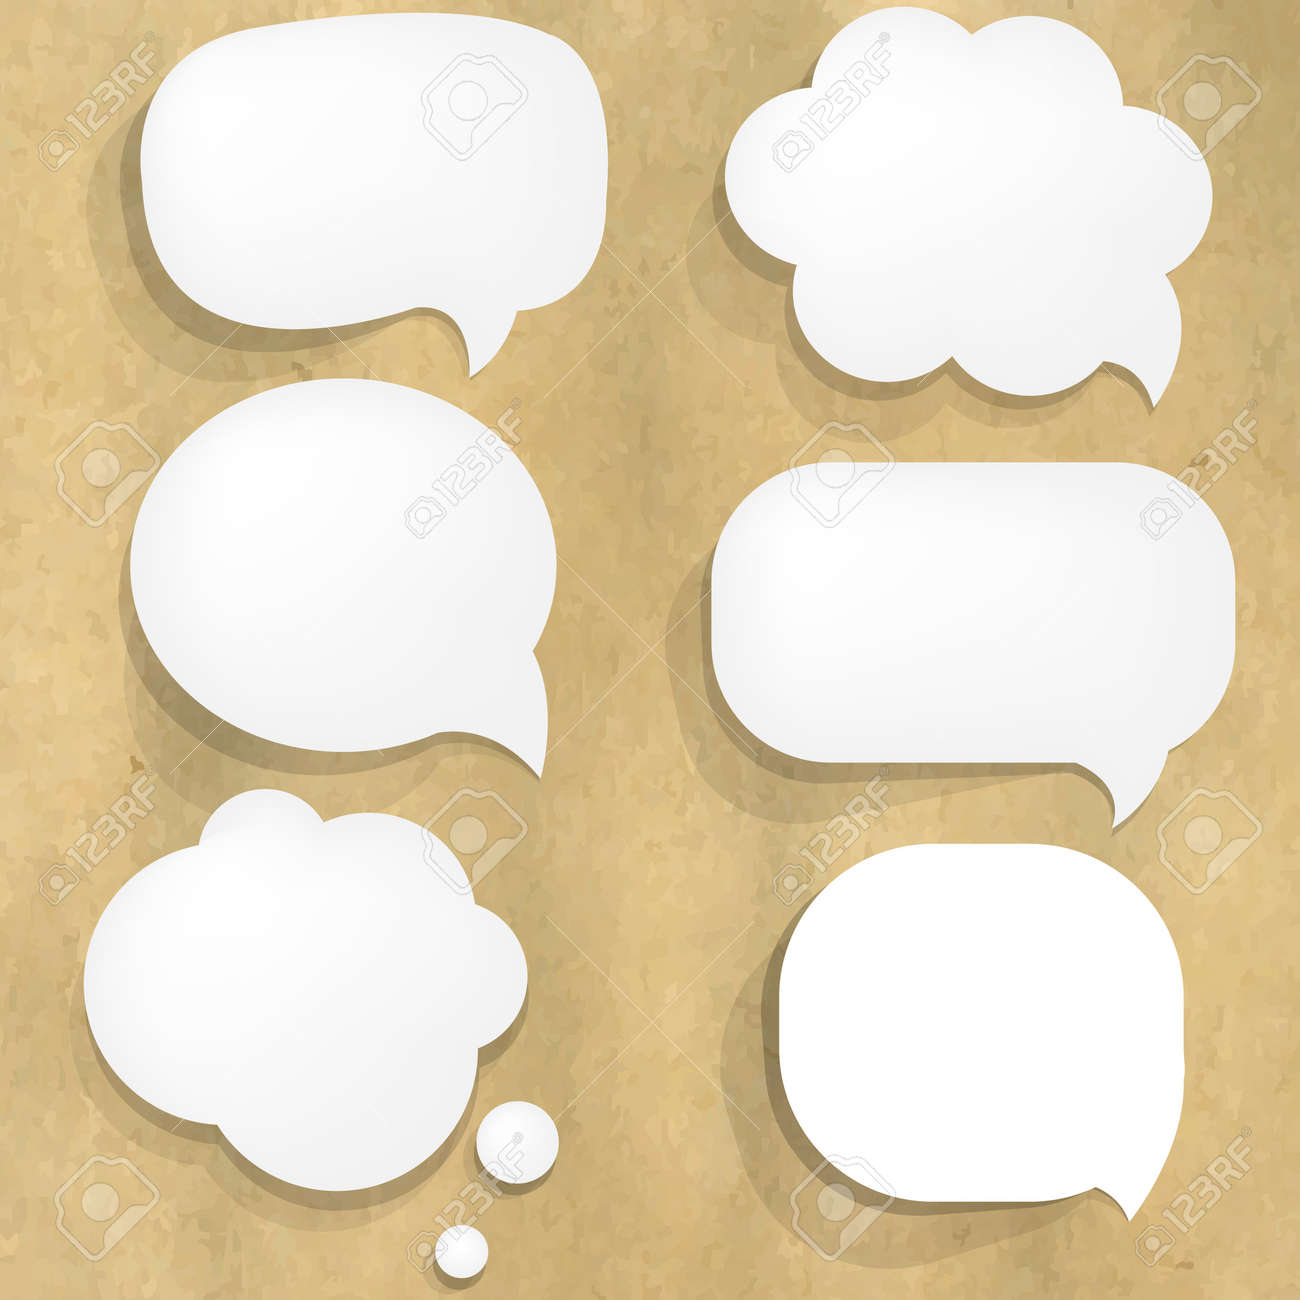 bubble sheet images u0026 stock pictures royalty free bubble sheet